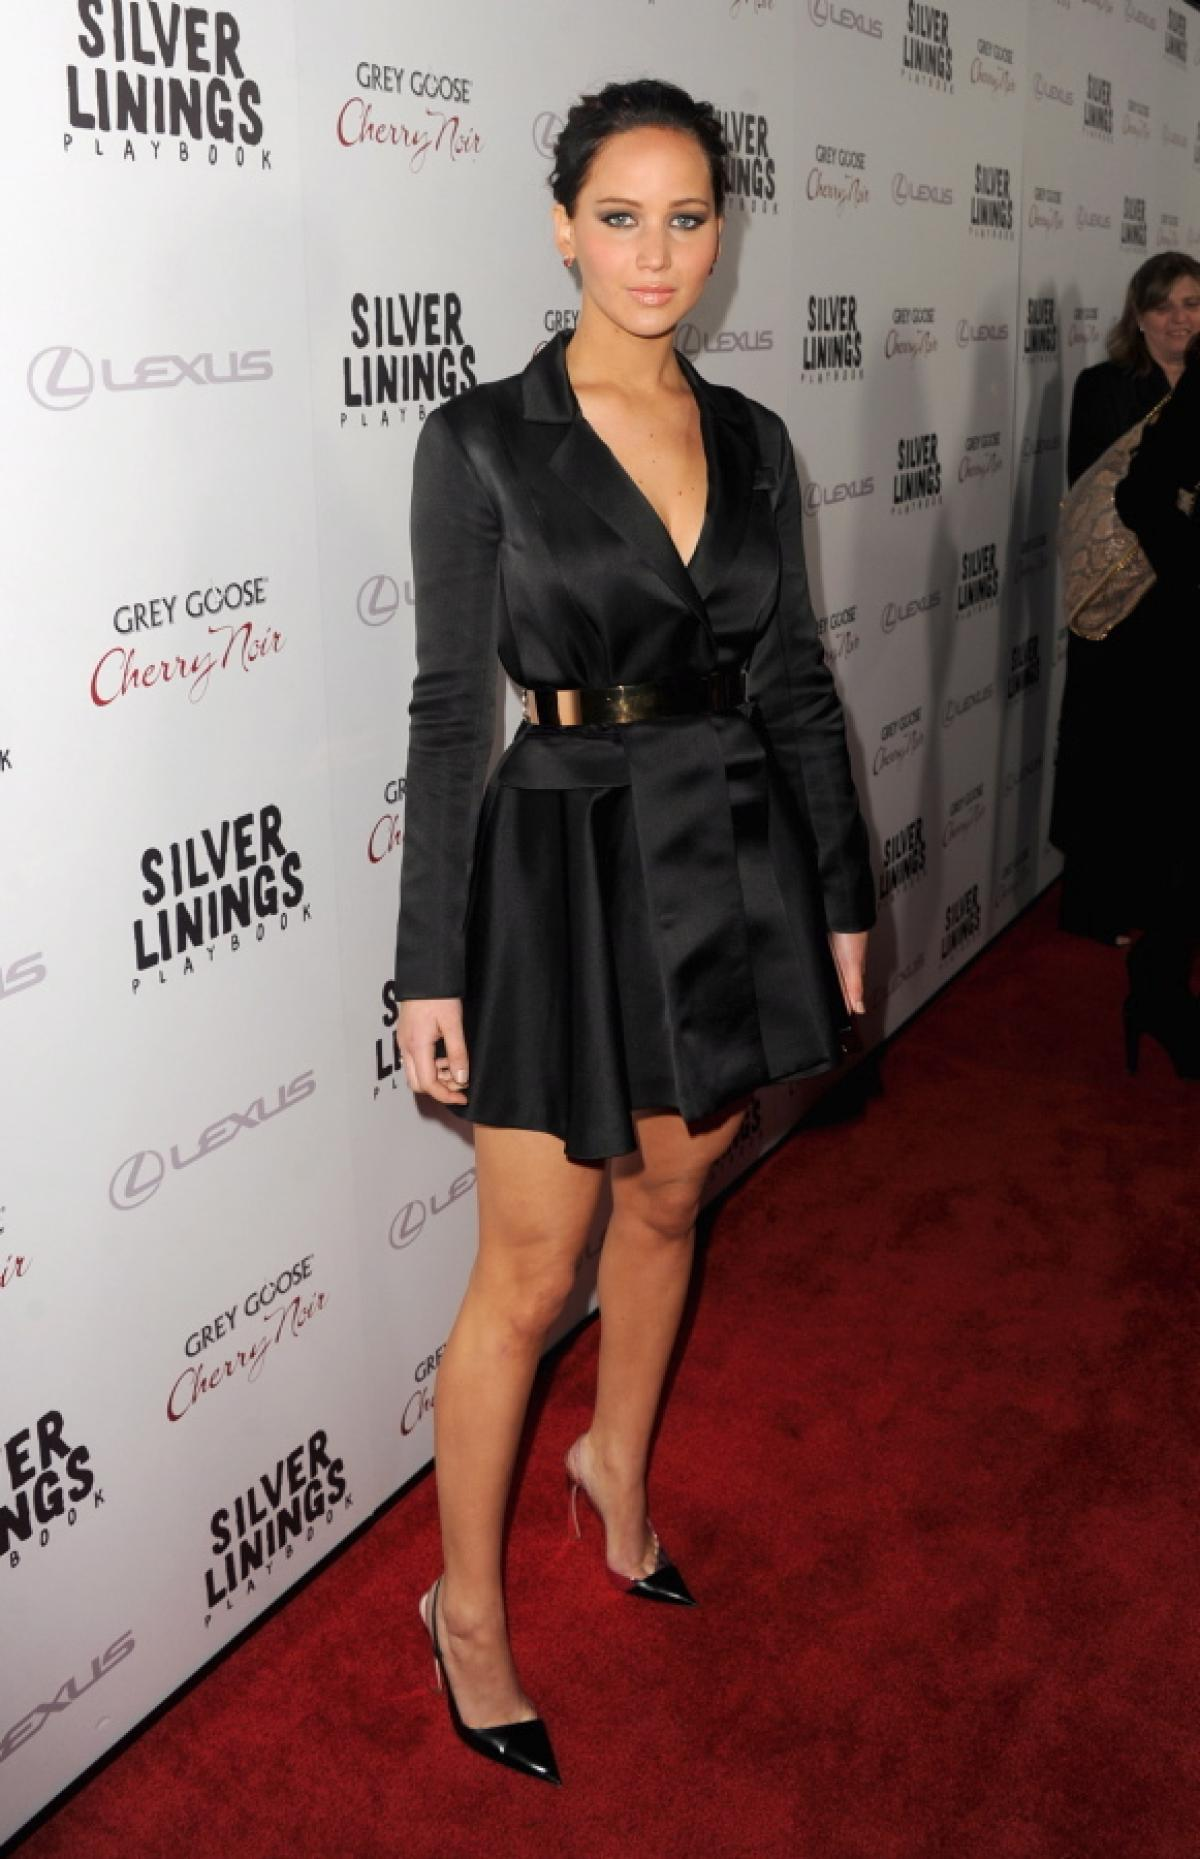 In a black satin Dior coat dress at Silver Linings playbook Screening Nov. 19, 2012